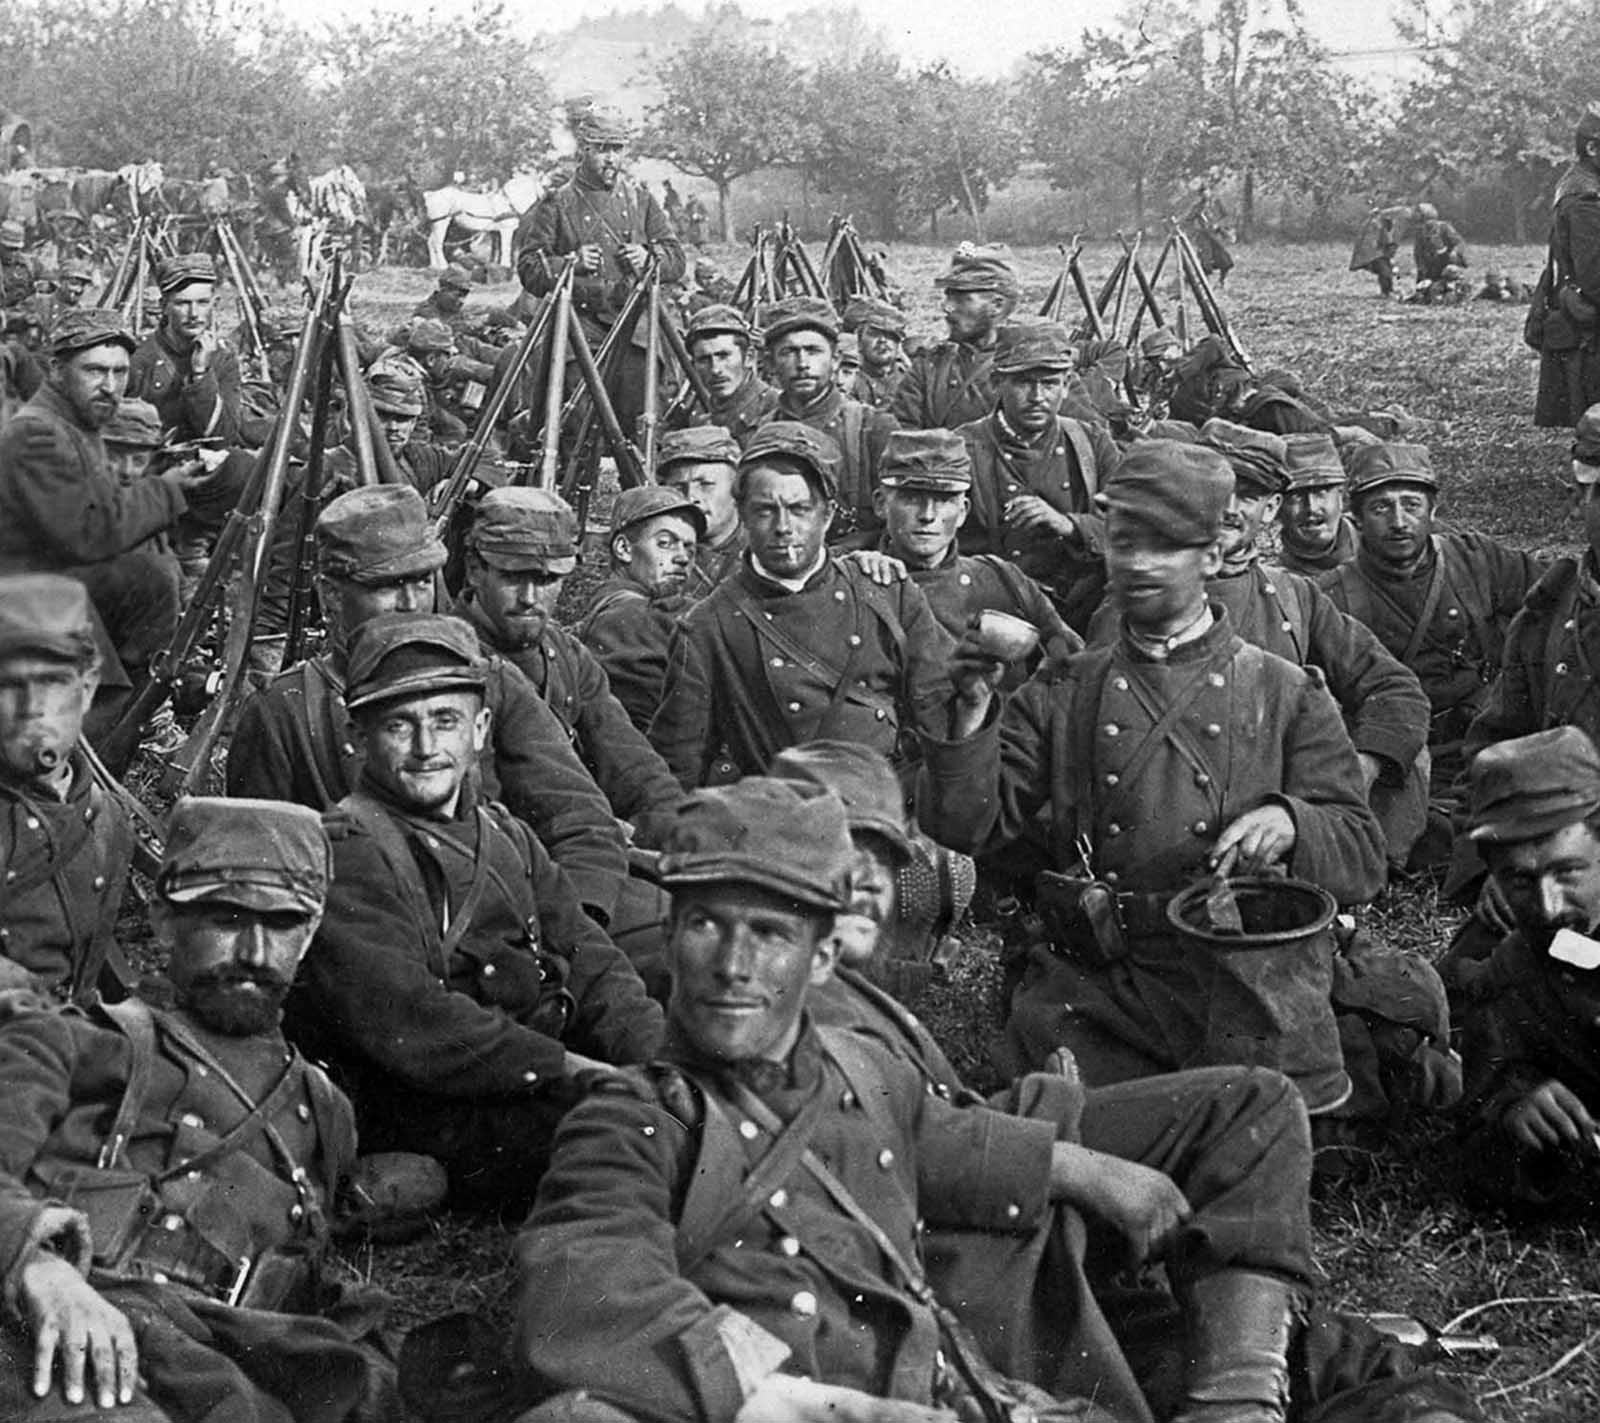 French Reserves from the USA, some of the two million fighters in the Battle of the Marne, fought in September of 1914. The First Battle of the Marne was a decisive week-long battle that halted the initial German advance into France, short of Paris, and led to the